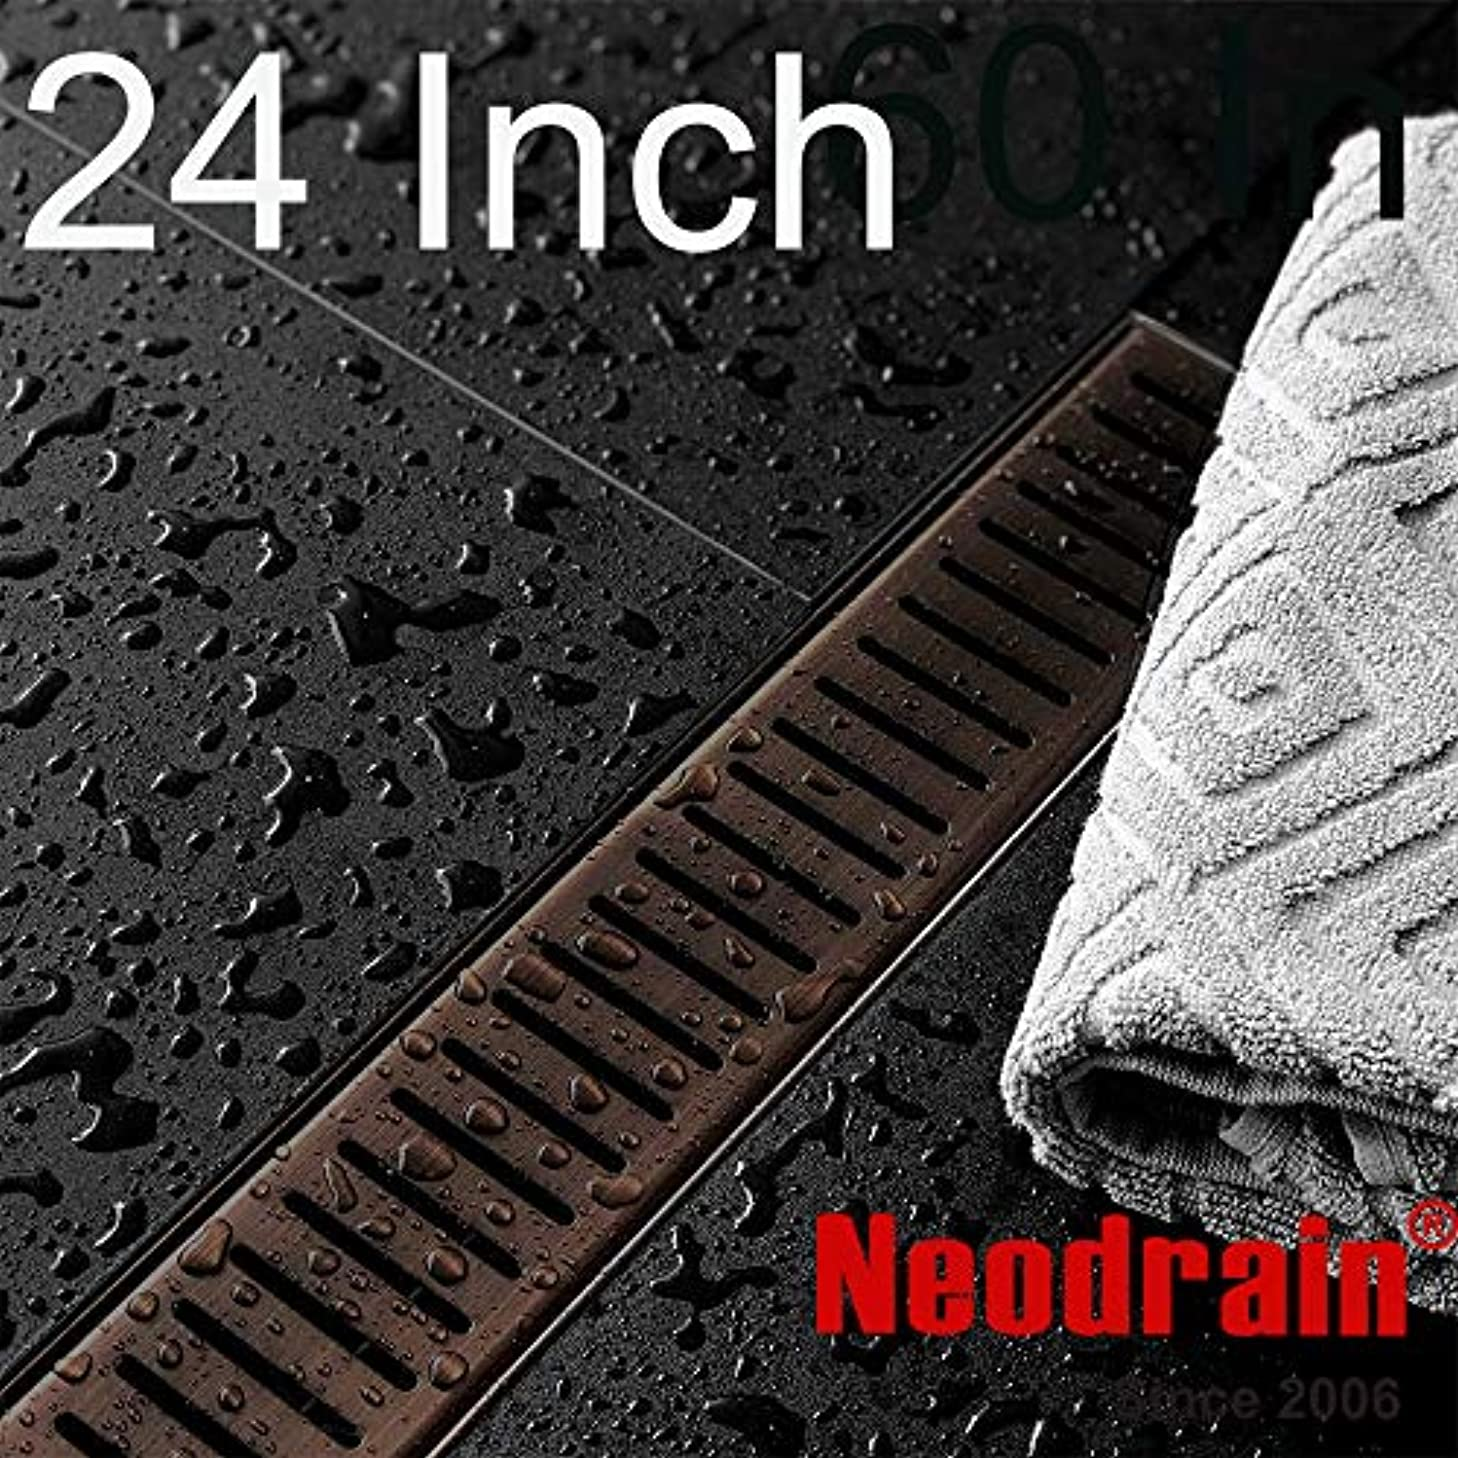 Neodrain 24-Inch Linear Shower Drain with Removable Capsule Pattern Grate, Antique Copper color, Oil Rubbed Bronze finish, 304 Stainless Steel Shower Floor Drain, With Leveling Feet, Hair Strainer